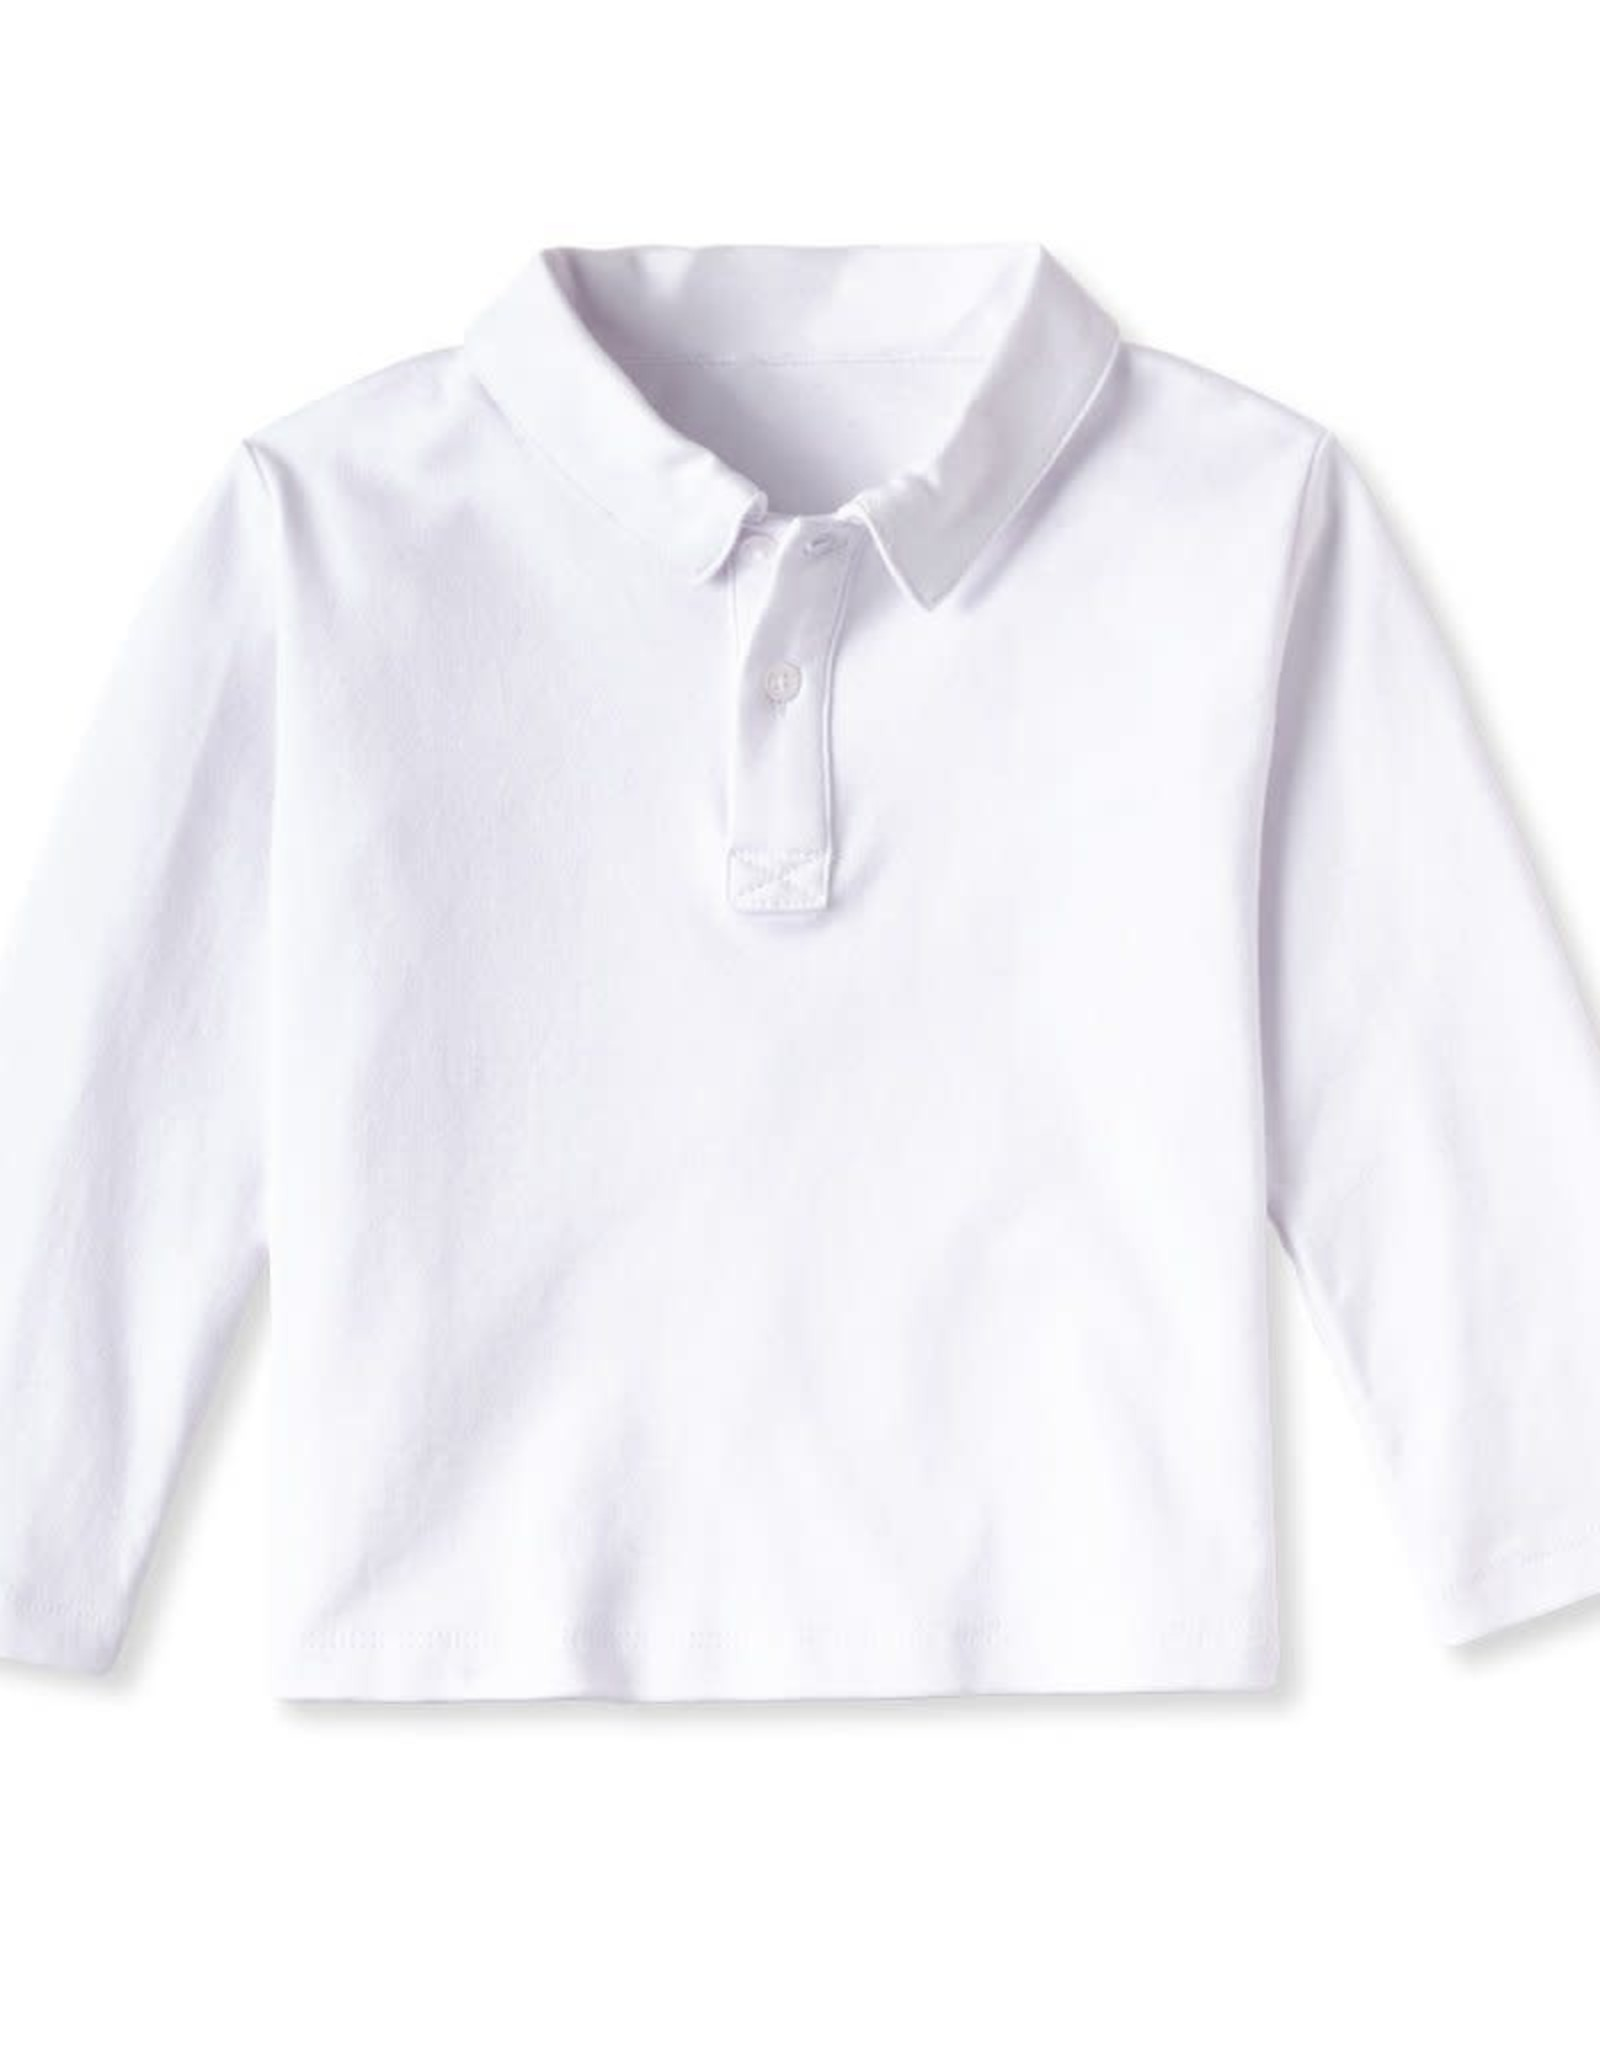 Classic prep Henry Long Sleeve Polo Shirt White